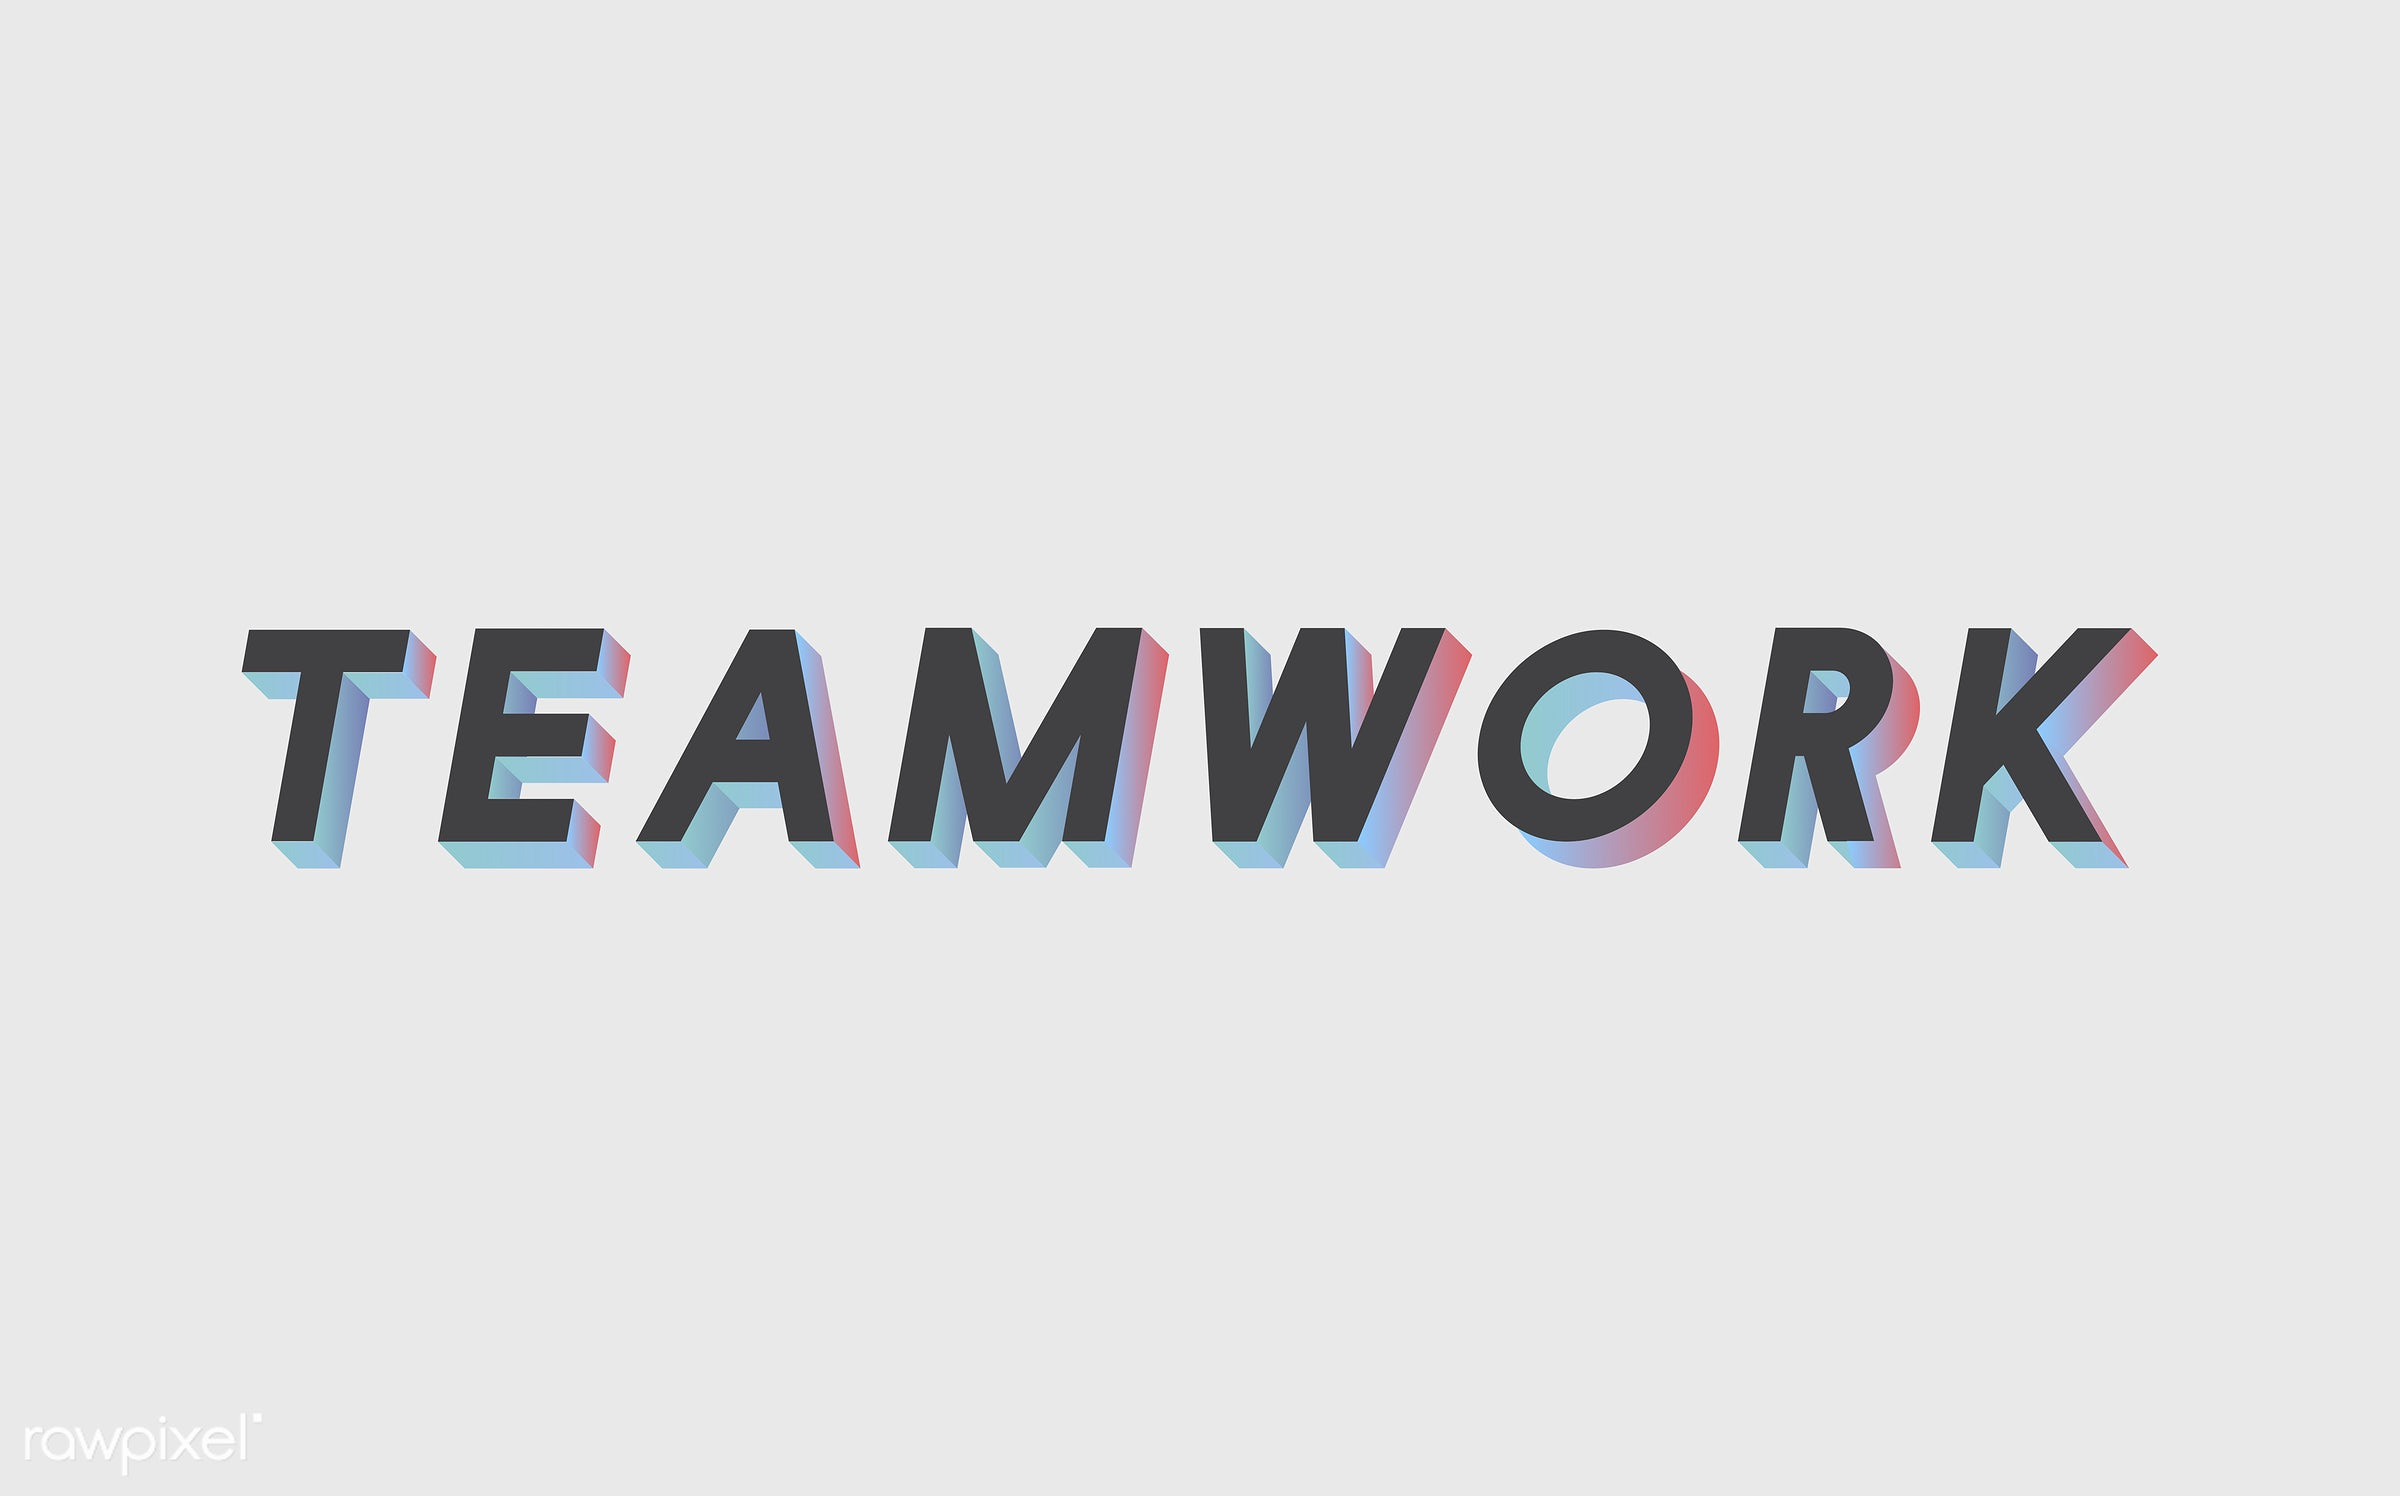 neon, colorful, 3d, three dimensional, vector, illustration, graphic, word, white, black, teamwork, team